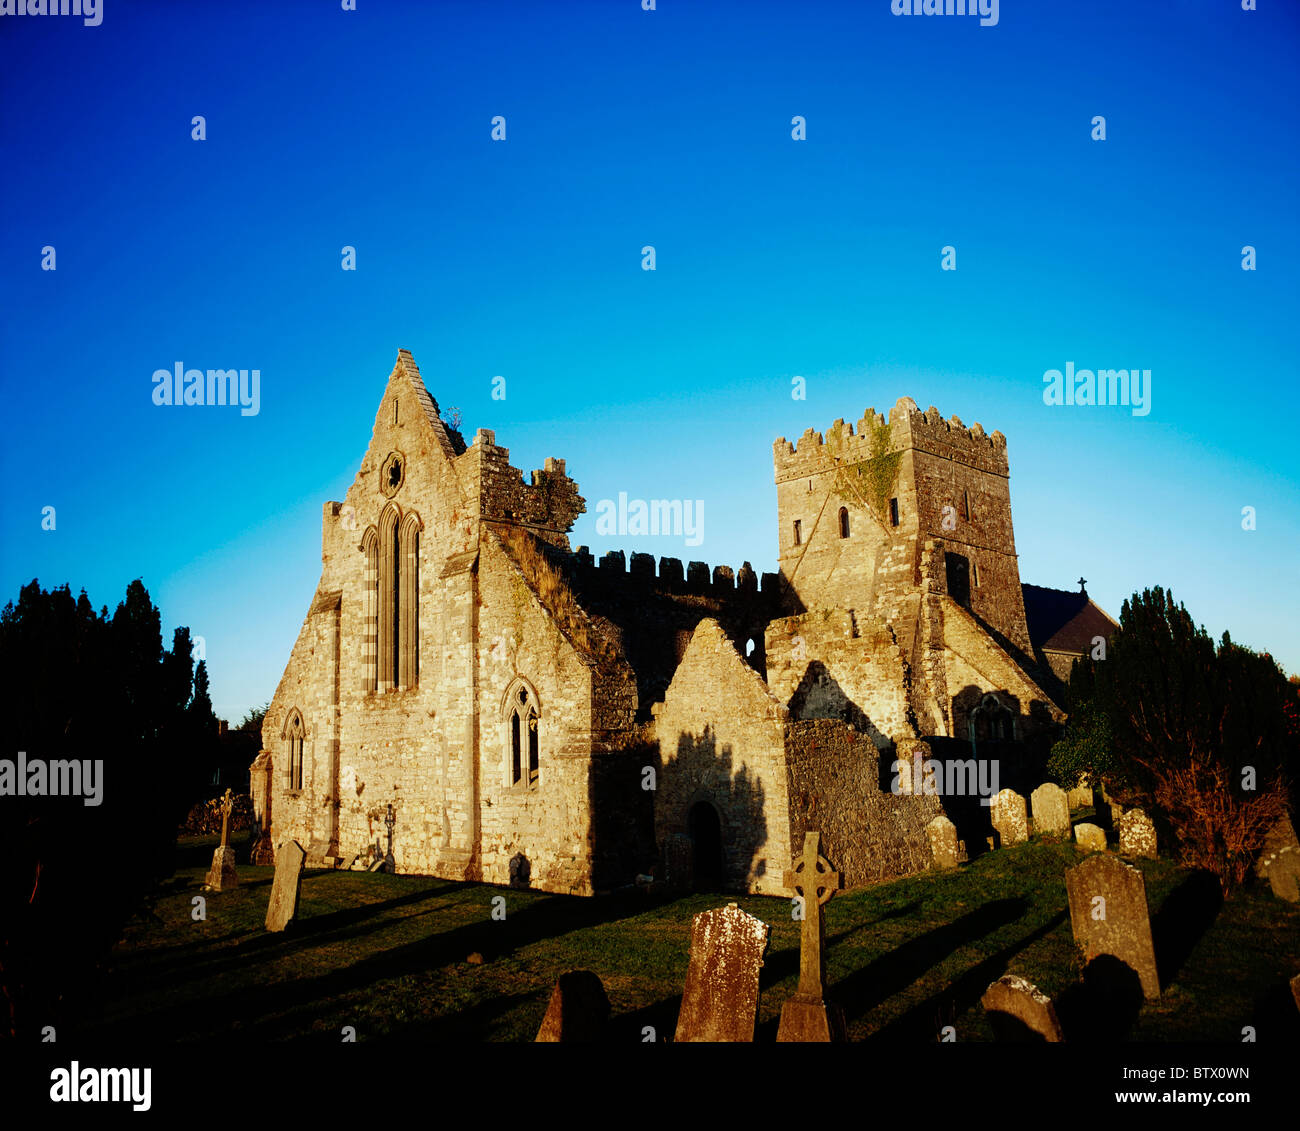 St. Mary's Church, Gowran Collegiate Church, Co Kilkenny, Ireland - Stock Image